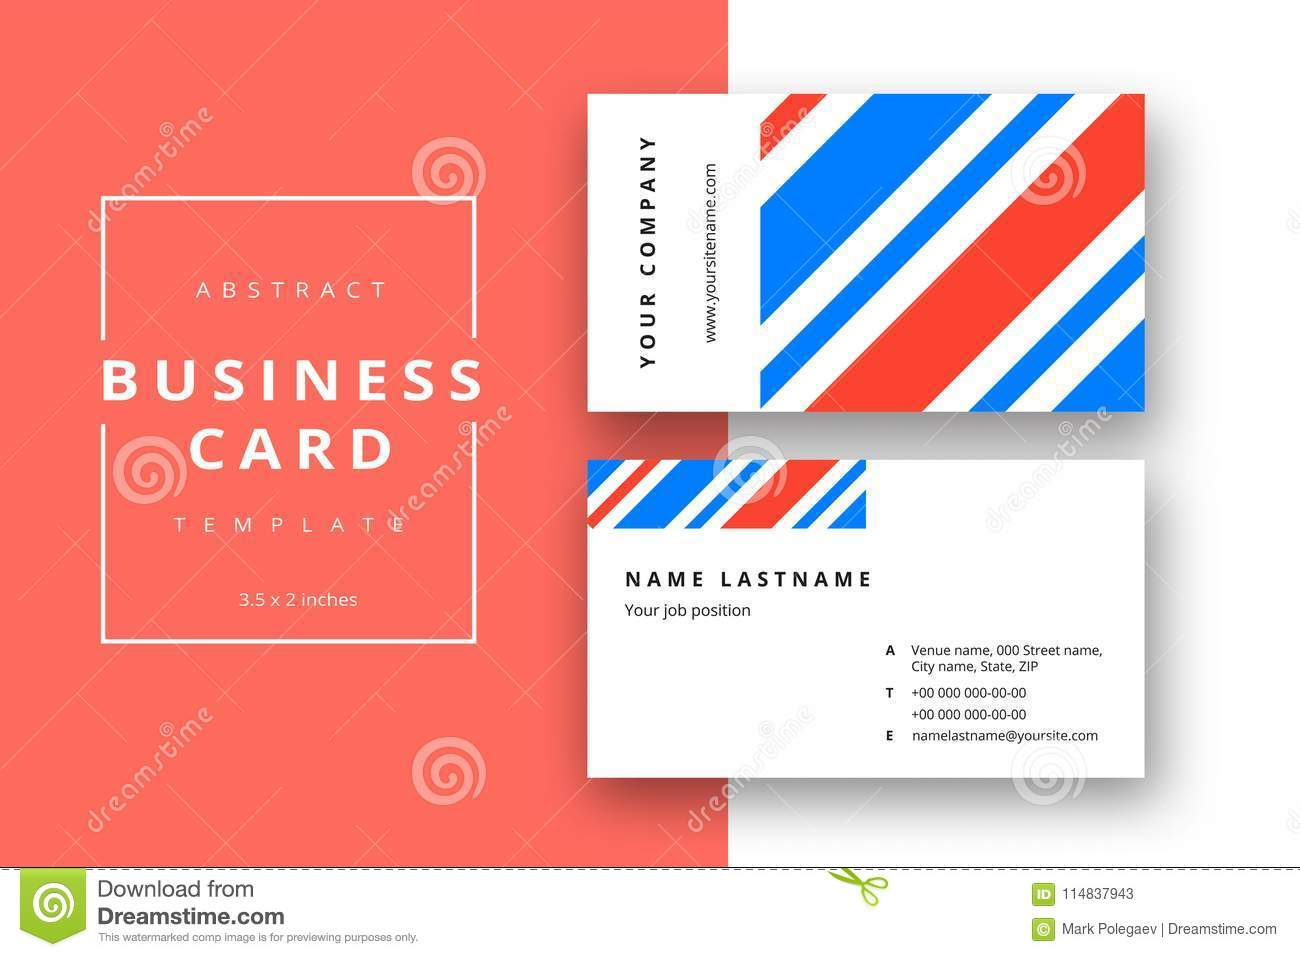 Trendy minimal abstract business card template in blue color mo download trendy minimal abstract business card template in blue color mo stock vector illustration reheart Choice Image